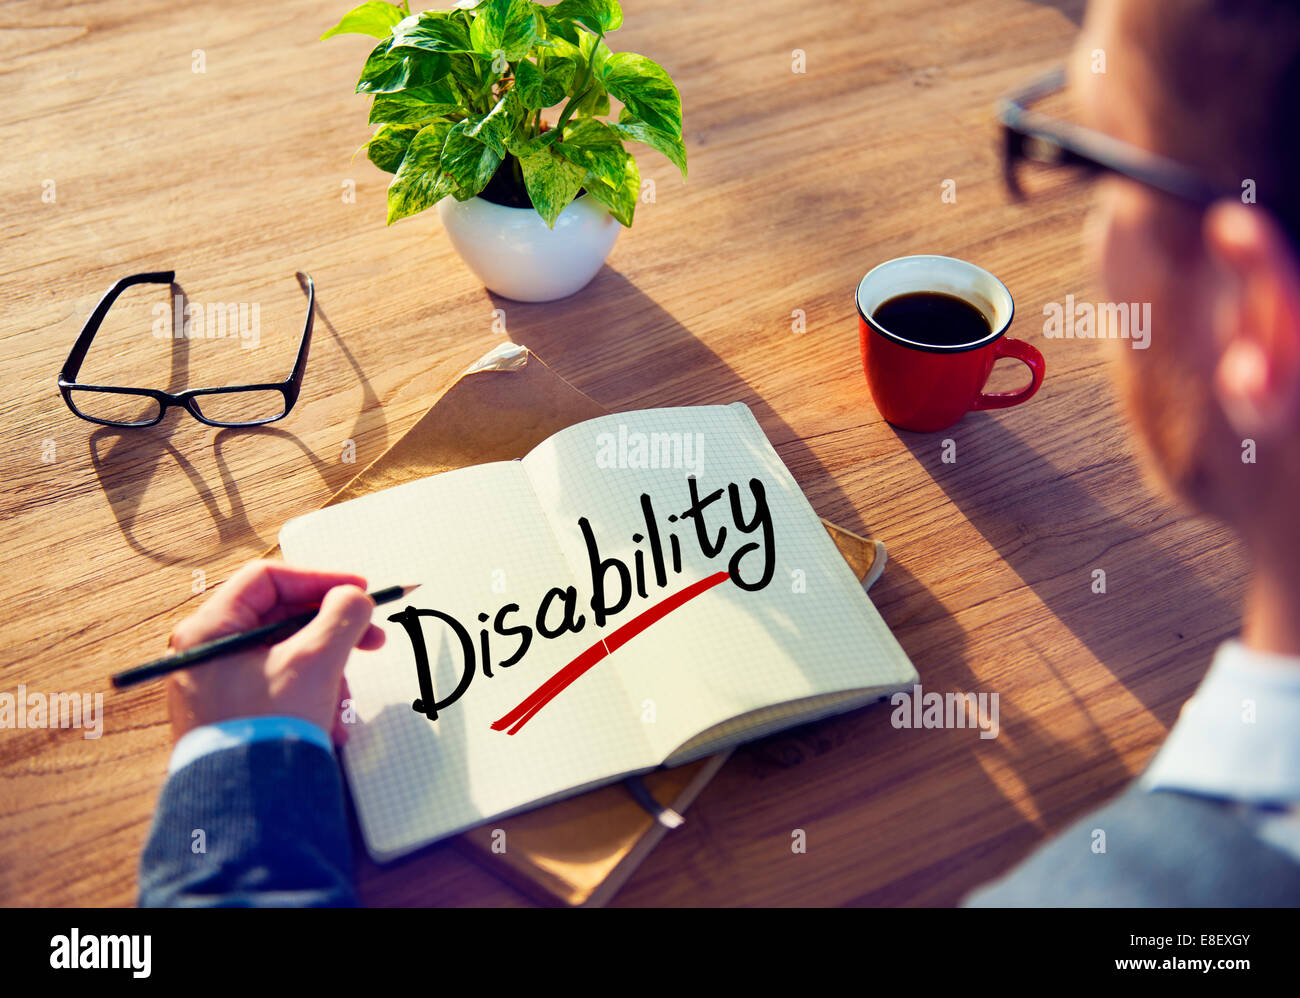 A Man Brainstorming about Disability - Stock Image